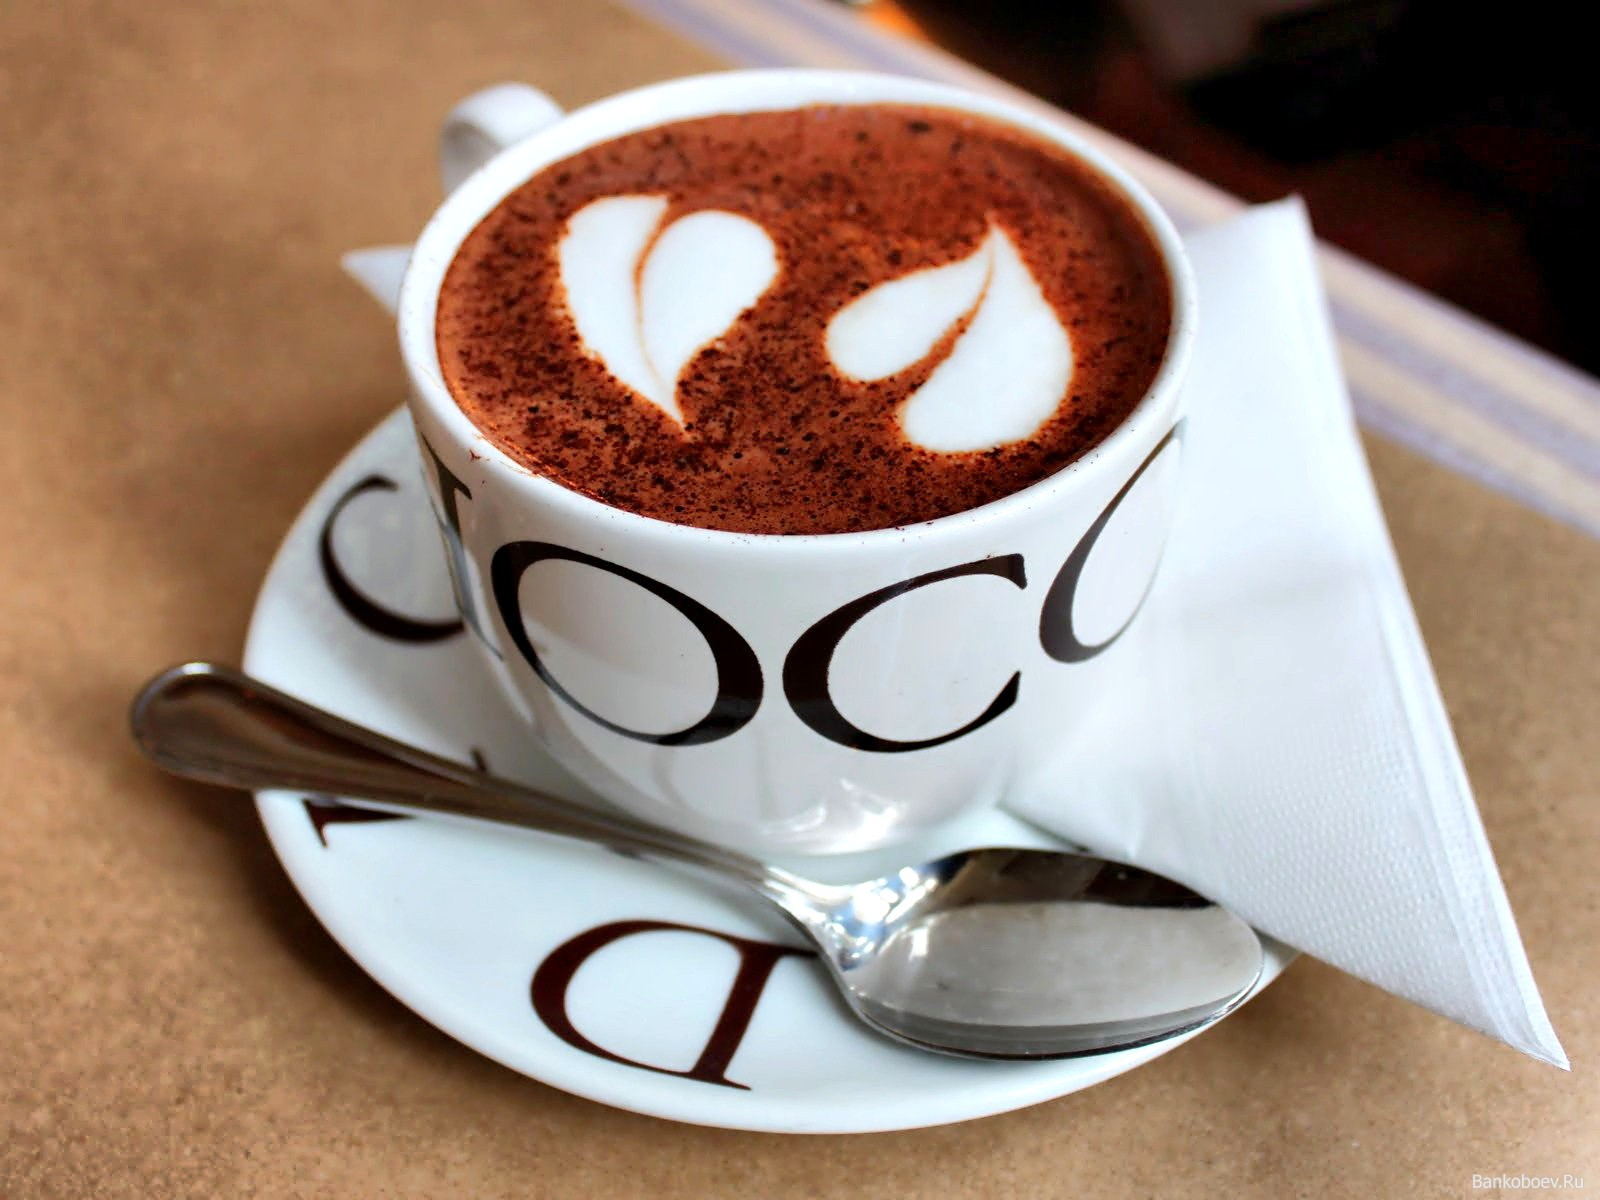 Frothy Coffee Photos HD Wallpapers Download Free Wallpapers in HD for ...